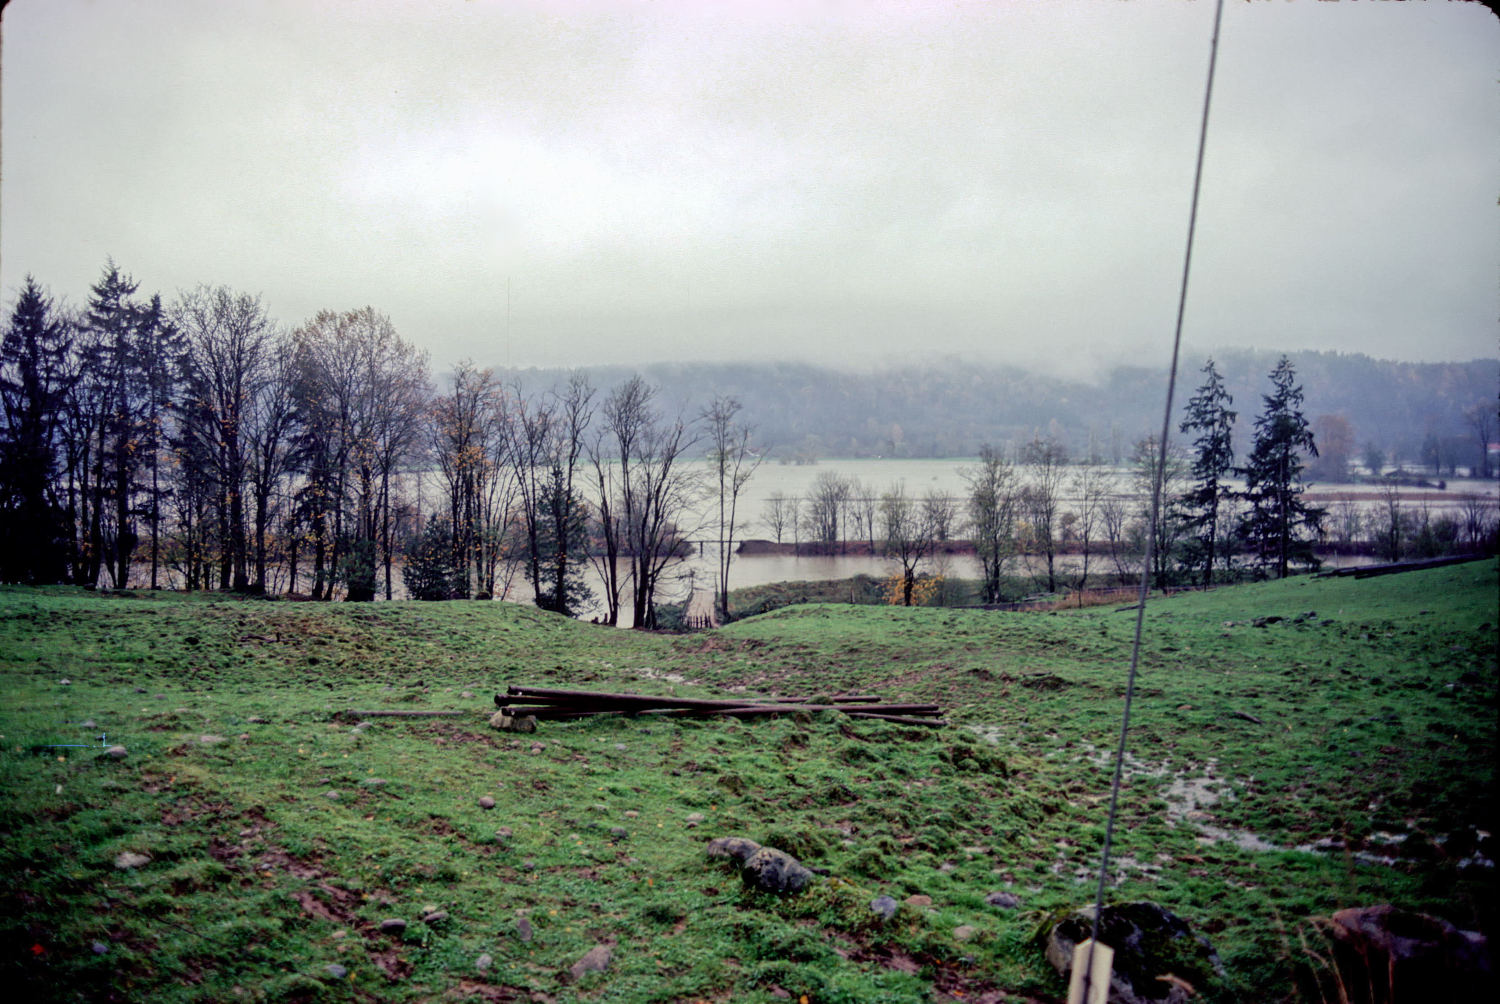 Inundated floodplain, somewhere between Duvall and Carnation, WA, Snoqualmie River, Nov 1985